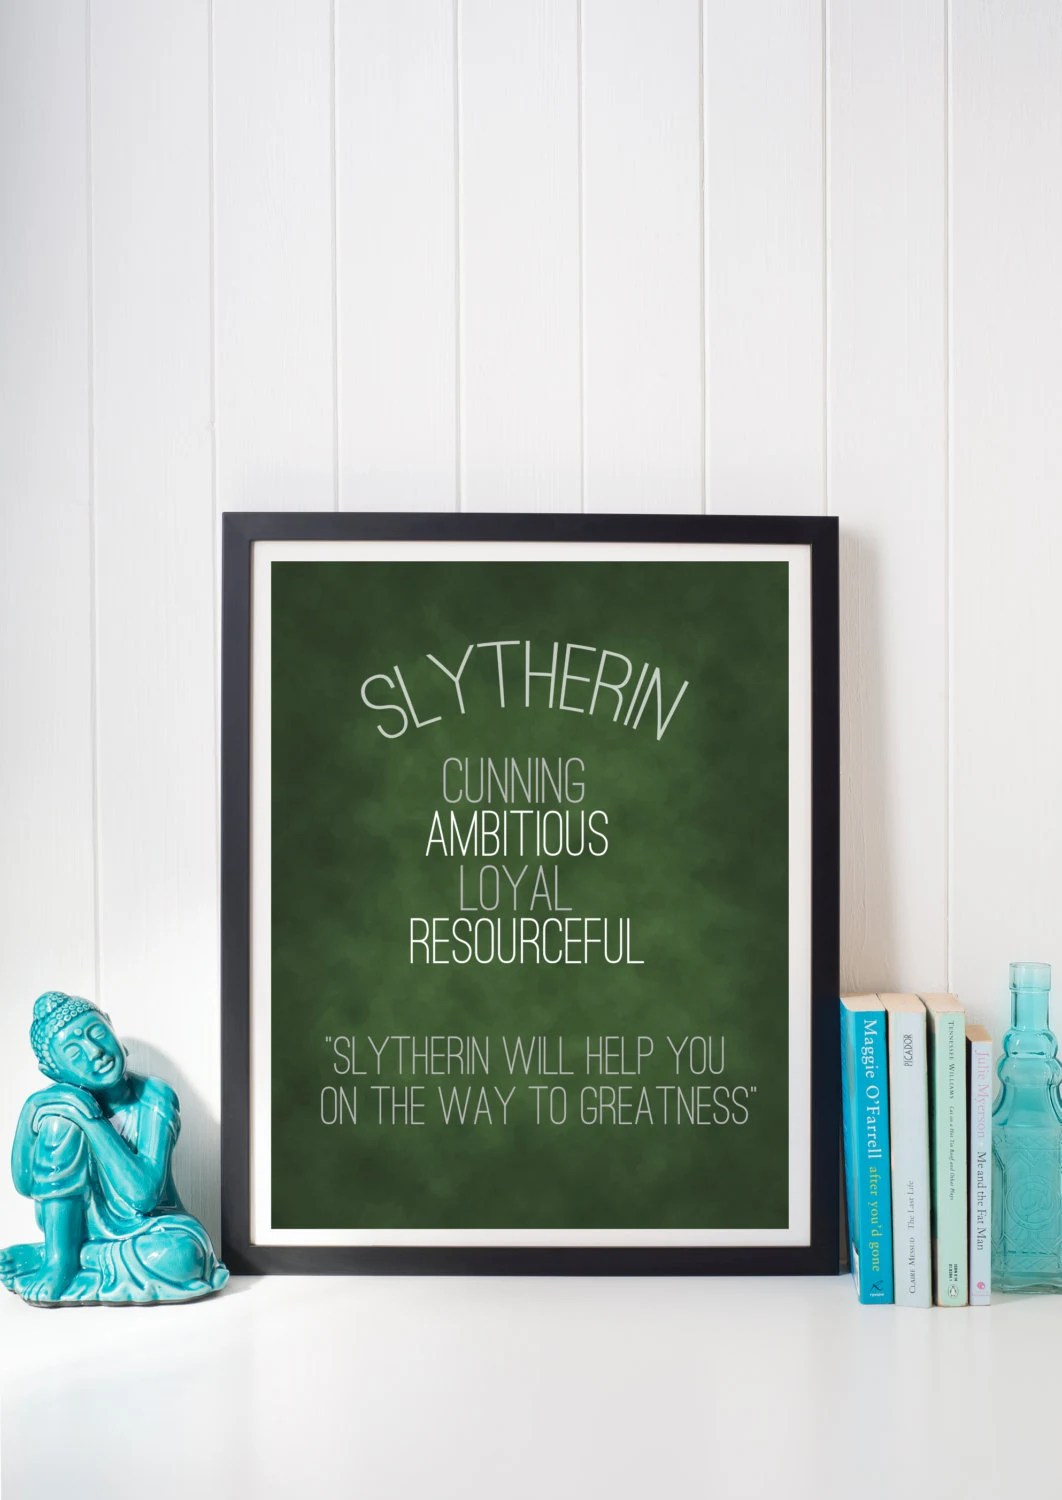 Harry Potter Slytherin Hogwarts House Pride Trait Motto Print